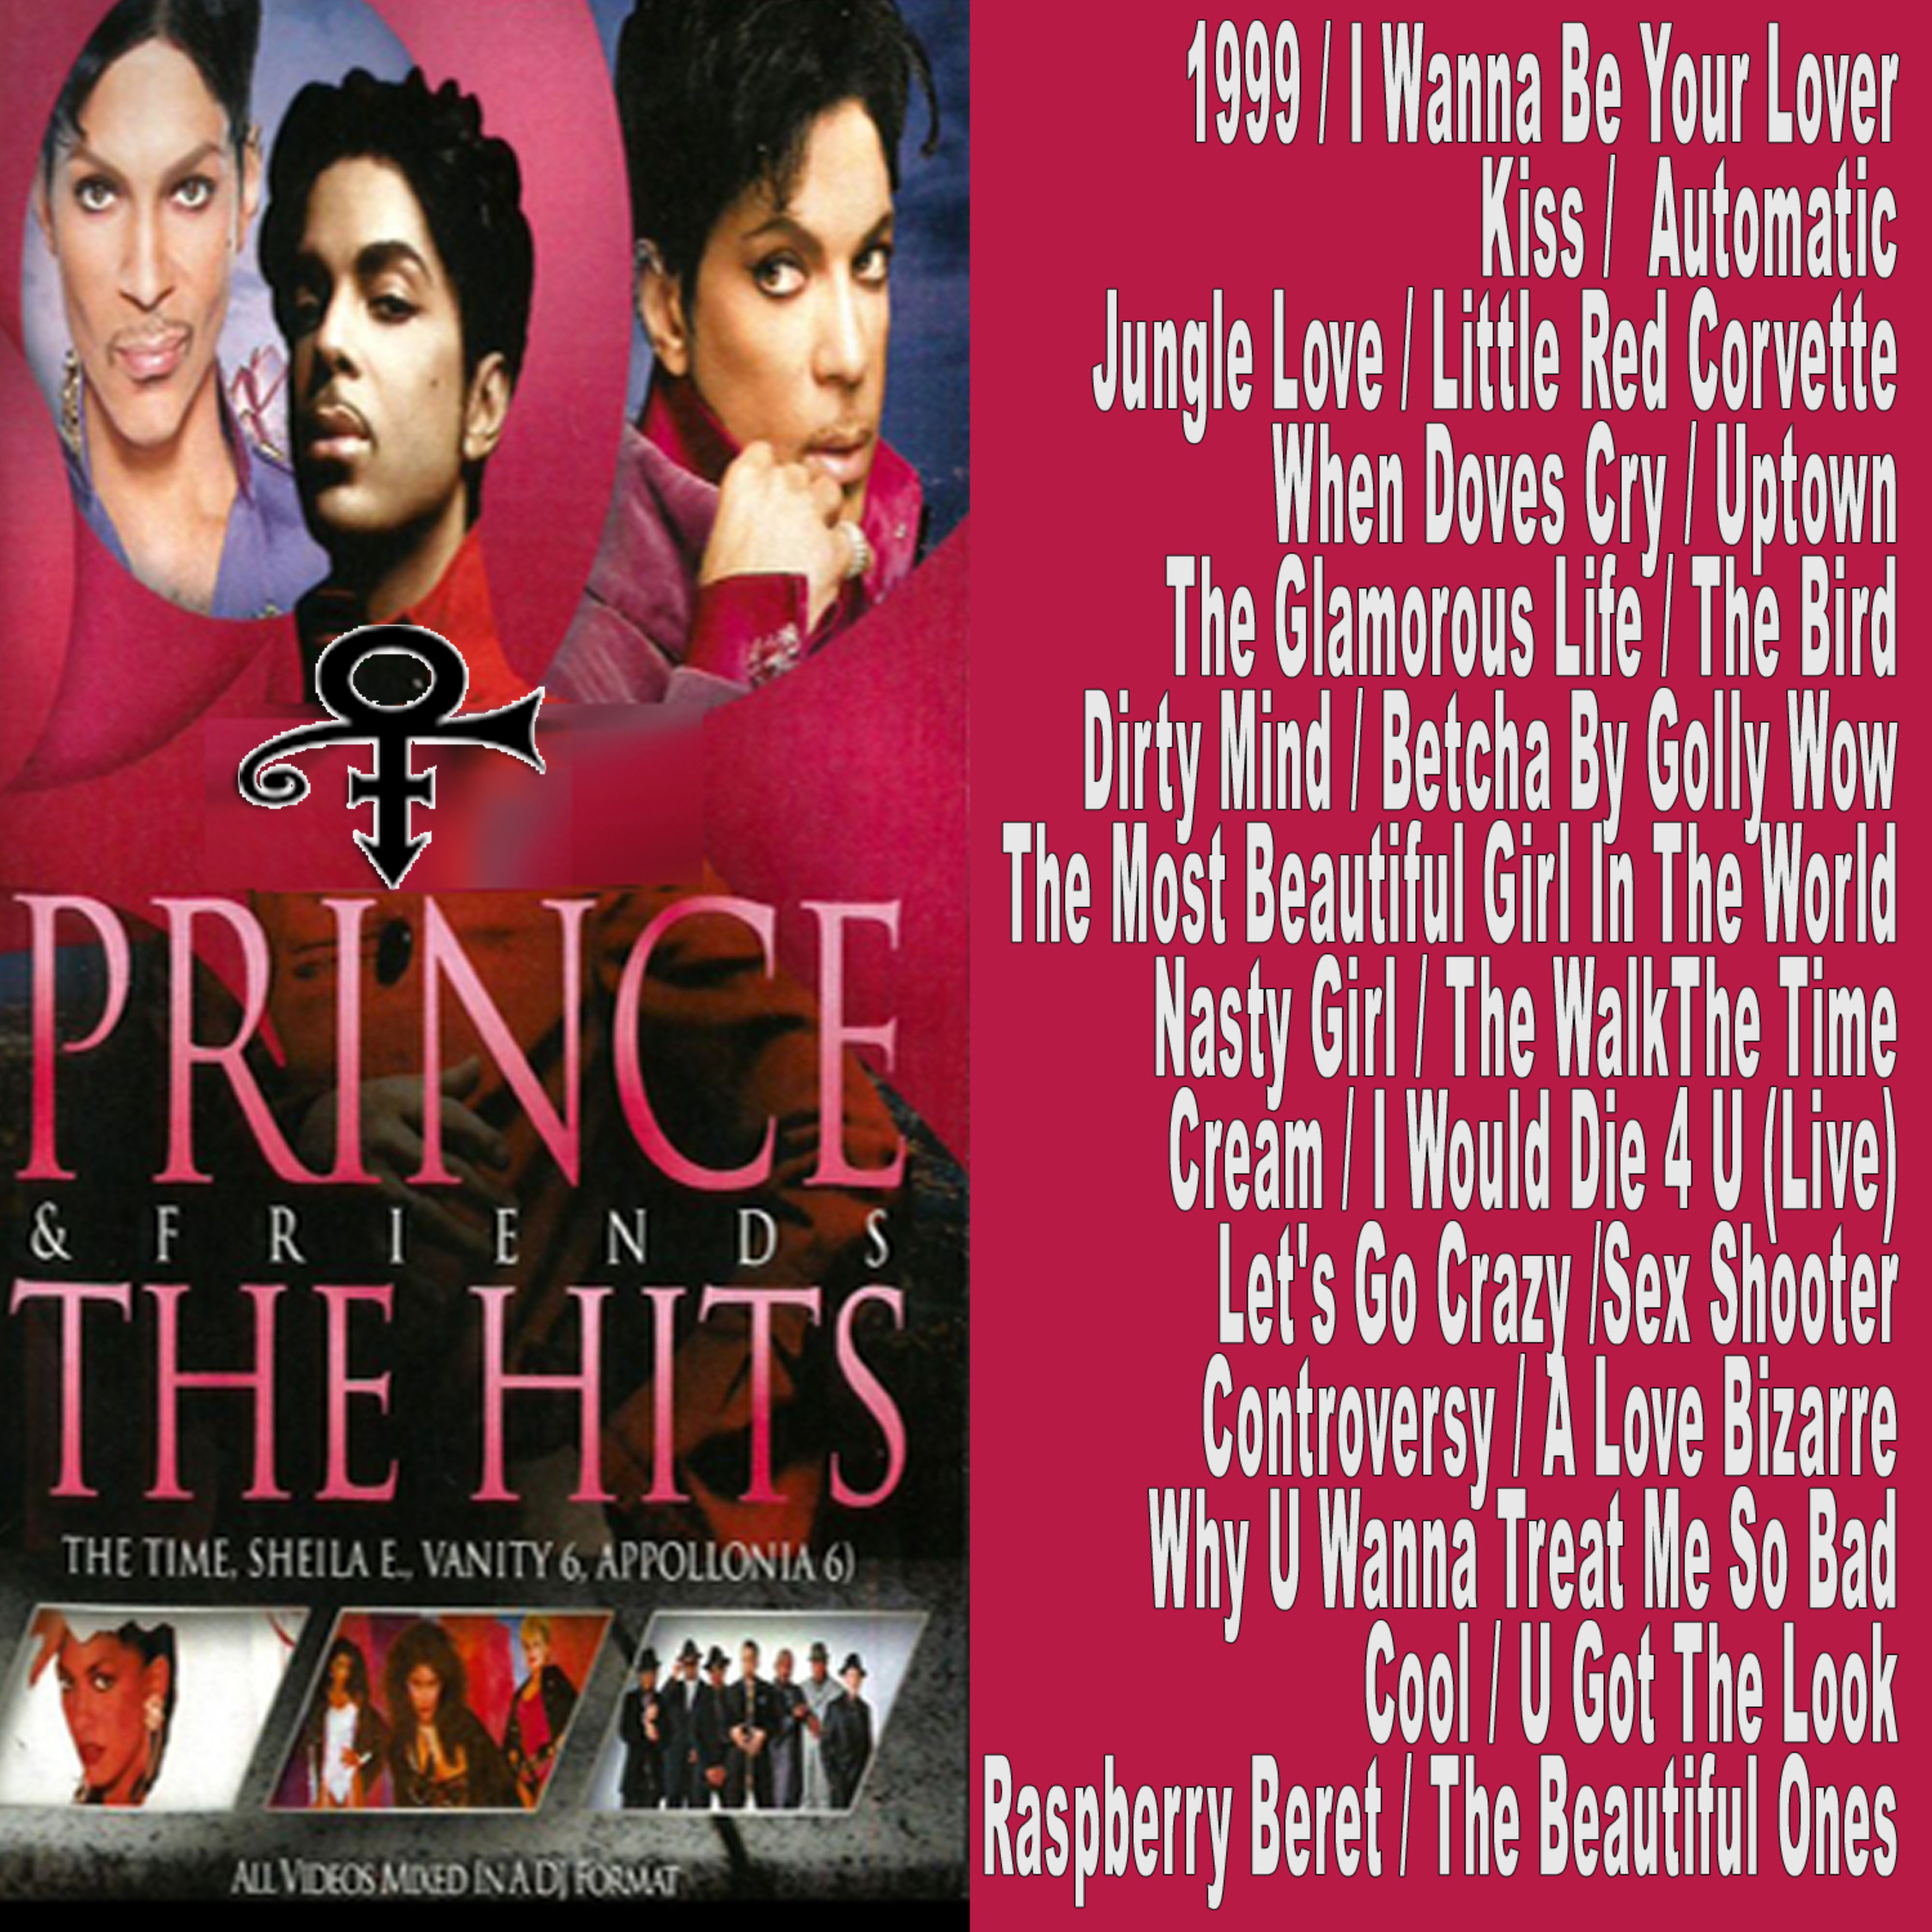 Best Of Prince & Friends - THE HITS Collection MP4